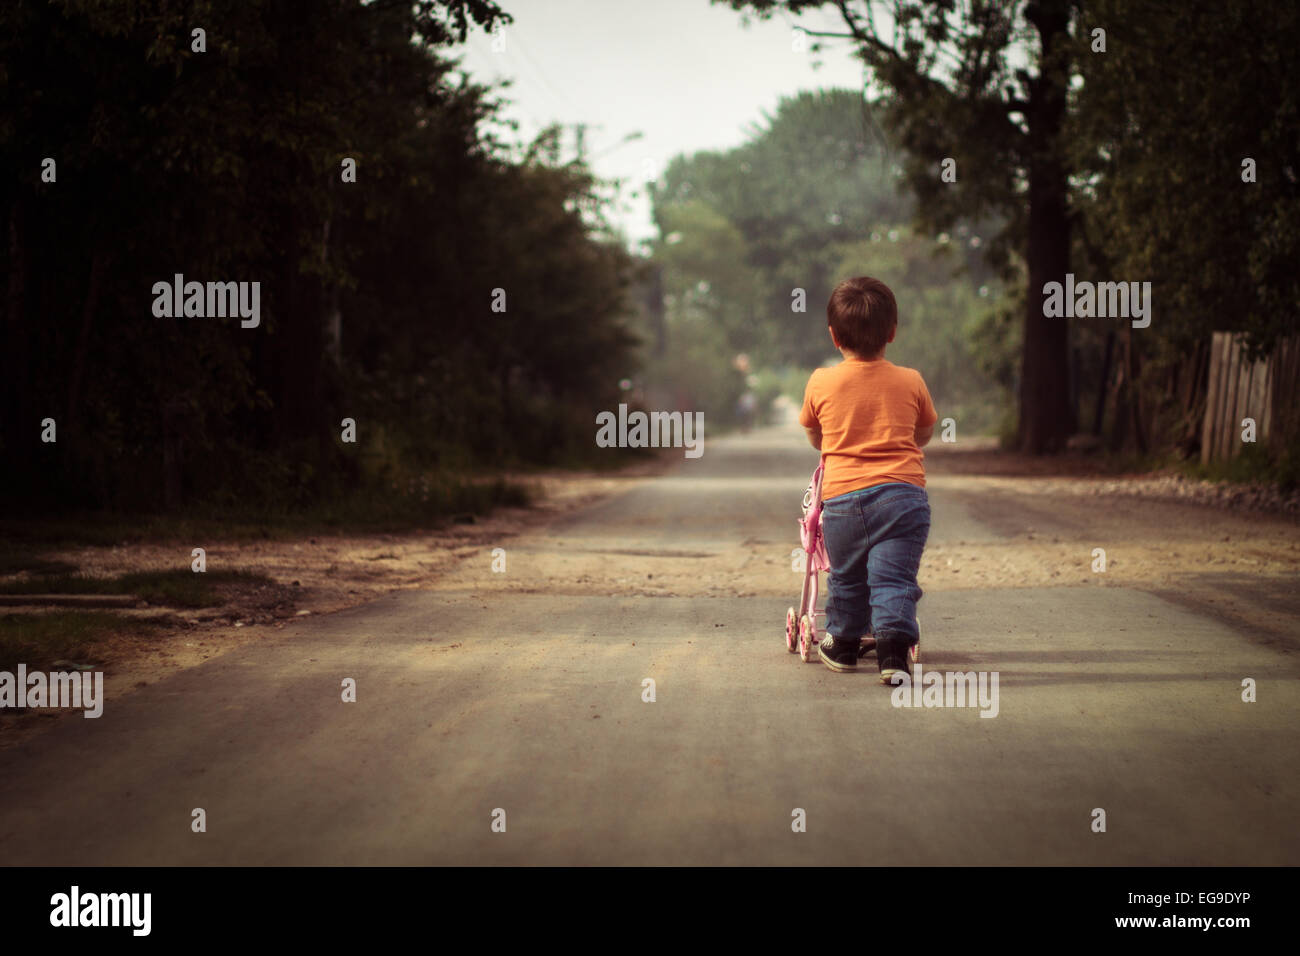 Rear view of boy pushing cart - Stock Image